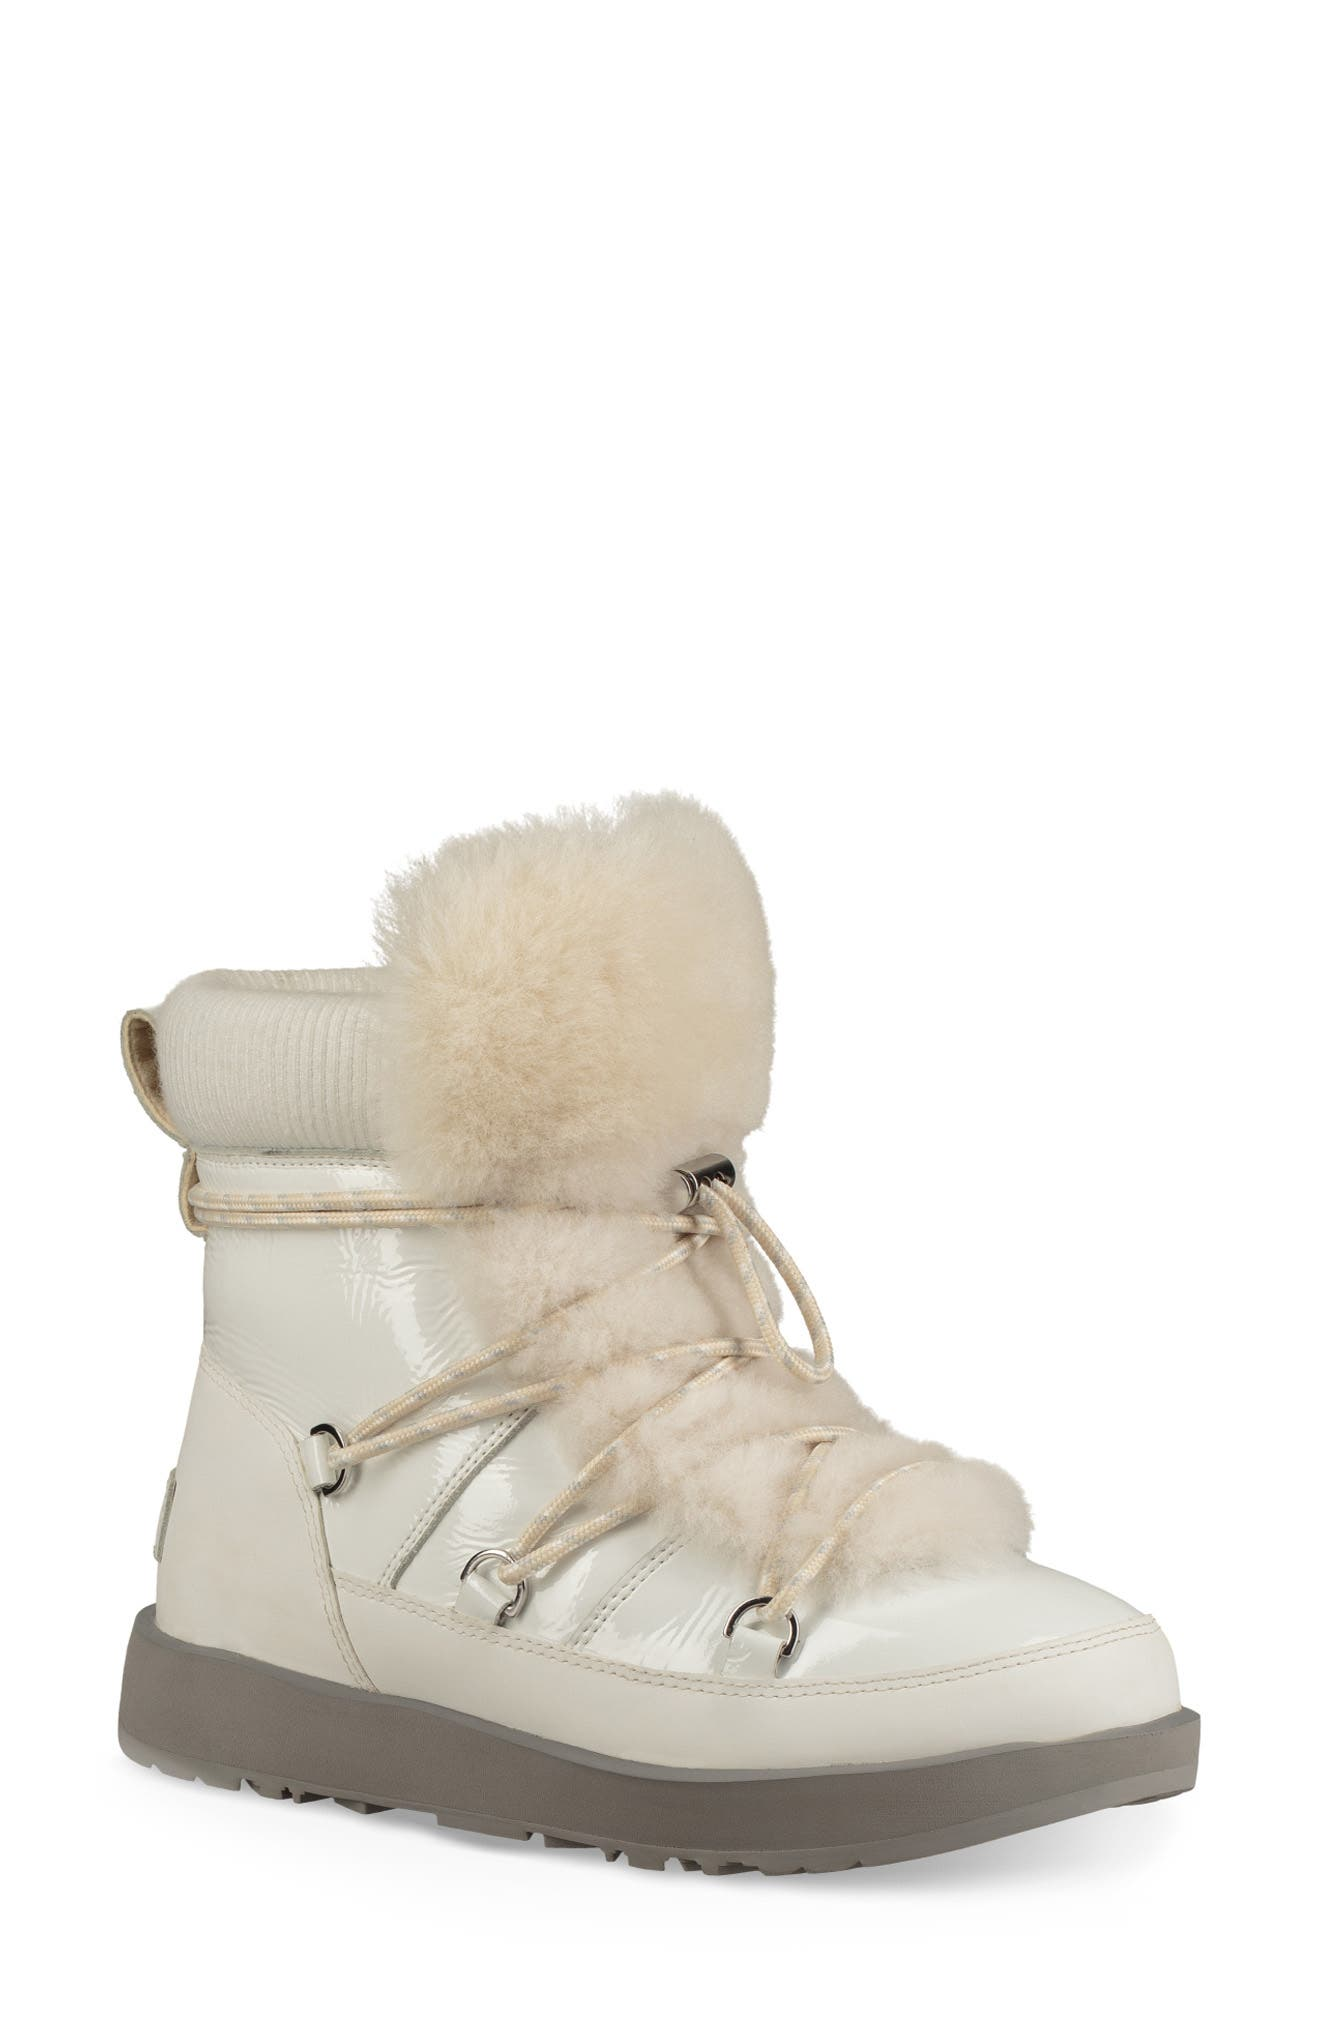 Highland Genuine Shearling Waterproof Bootie,                         Main,                         color, WHITE LEATHER